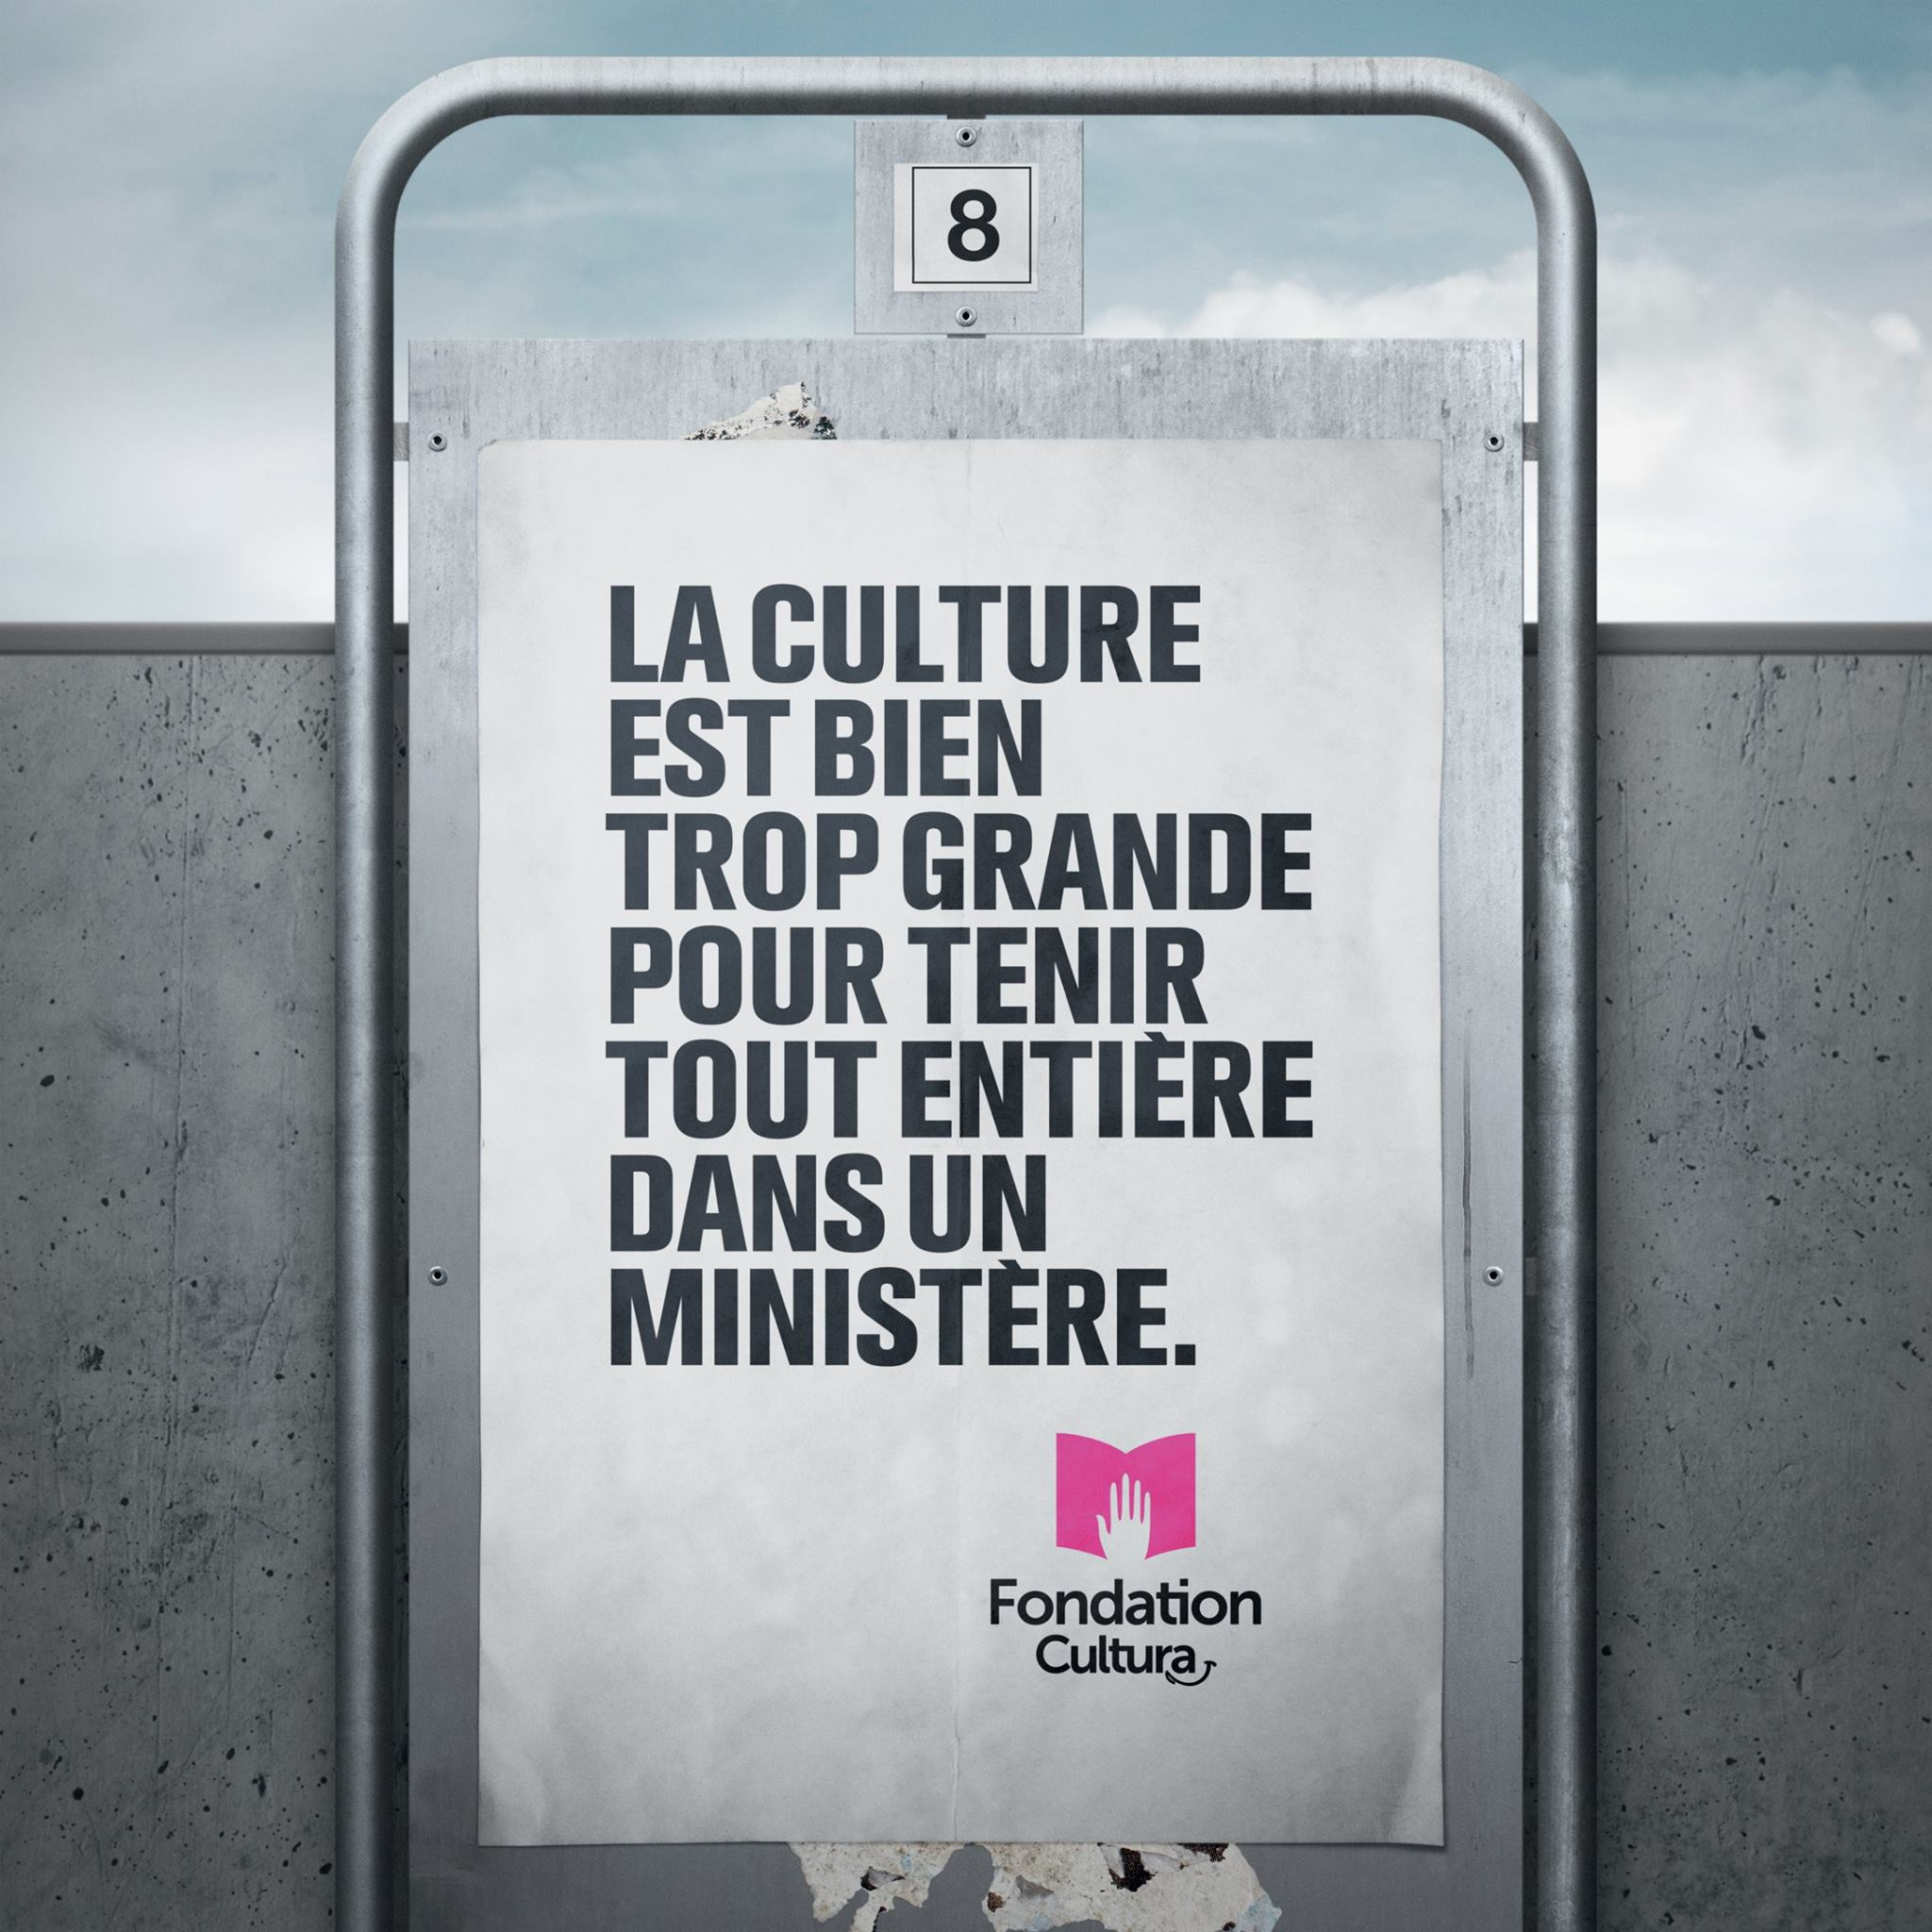 fondation-cultura-publicite-communication-affiche-la-culture-presidentielle-2017-candidats-agence-st-johns-3